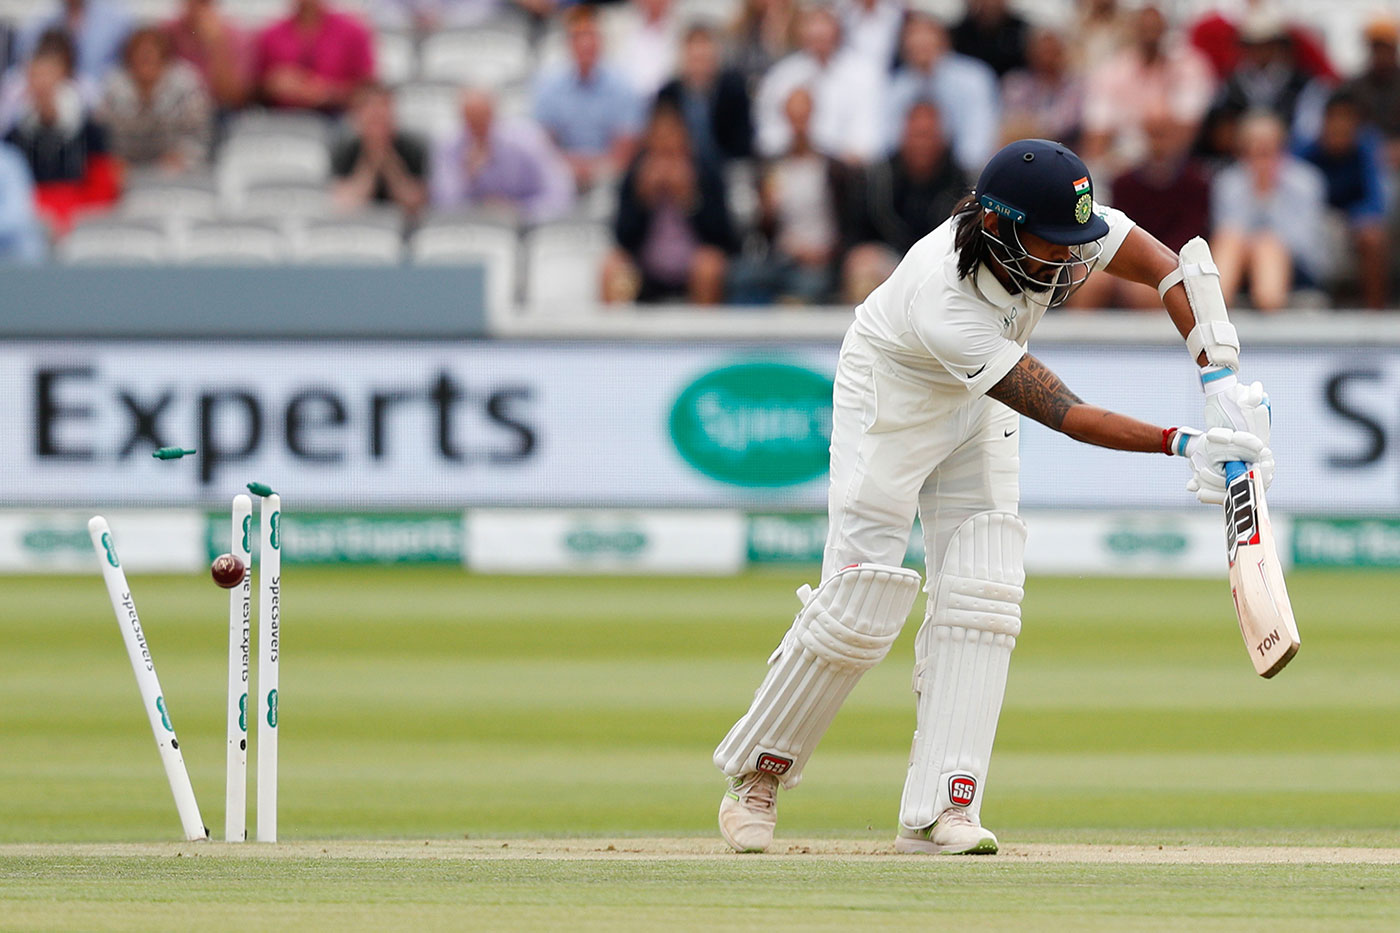 Vijay was dismissed for a pair by James Anderson in the 2018 Lord's Test